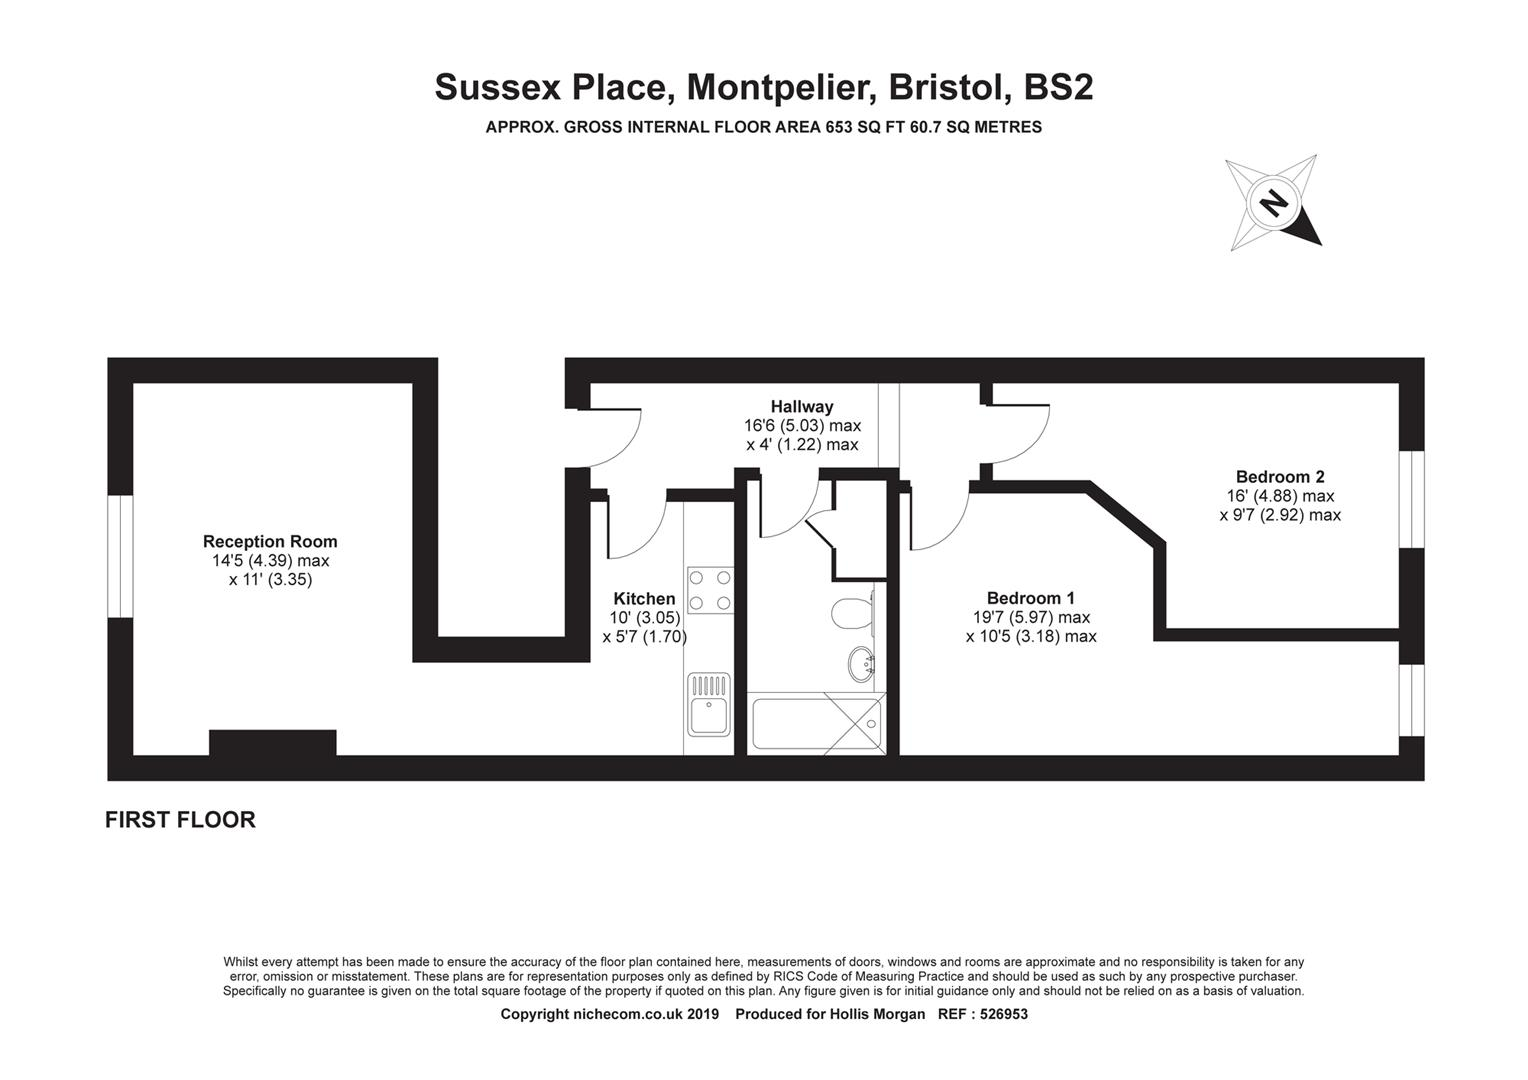 Floorplans For Sussex Place, Montpelier